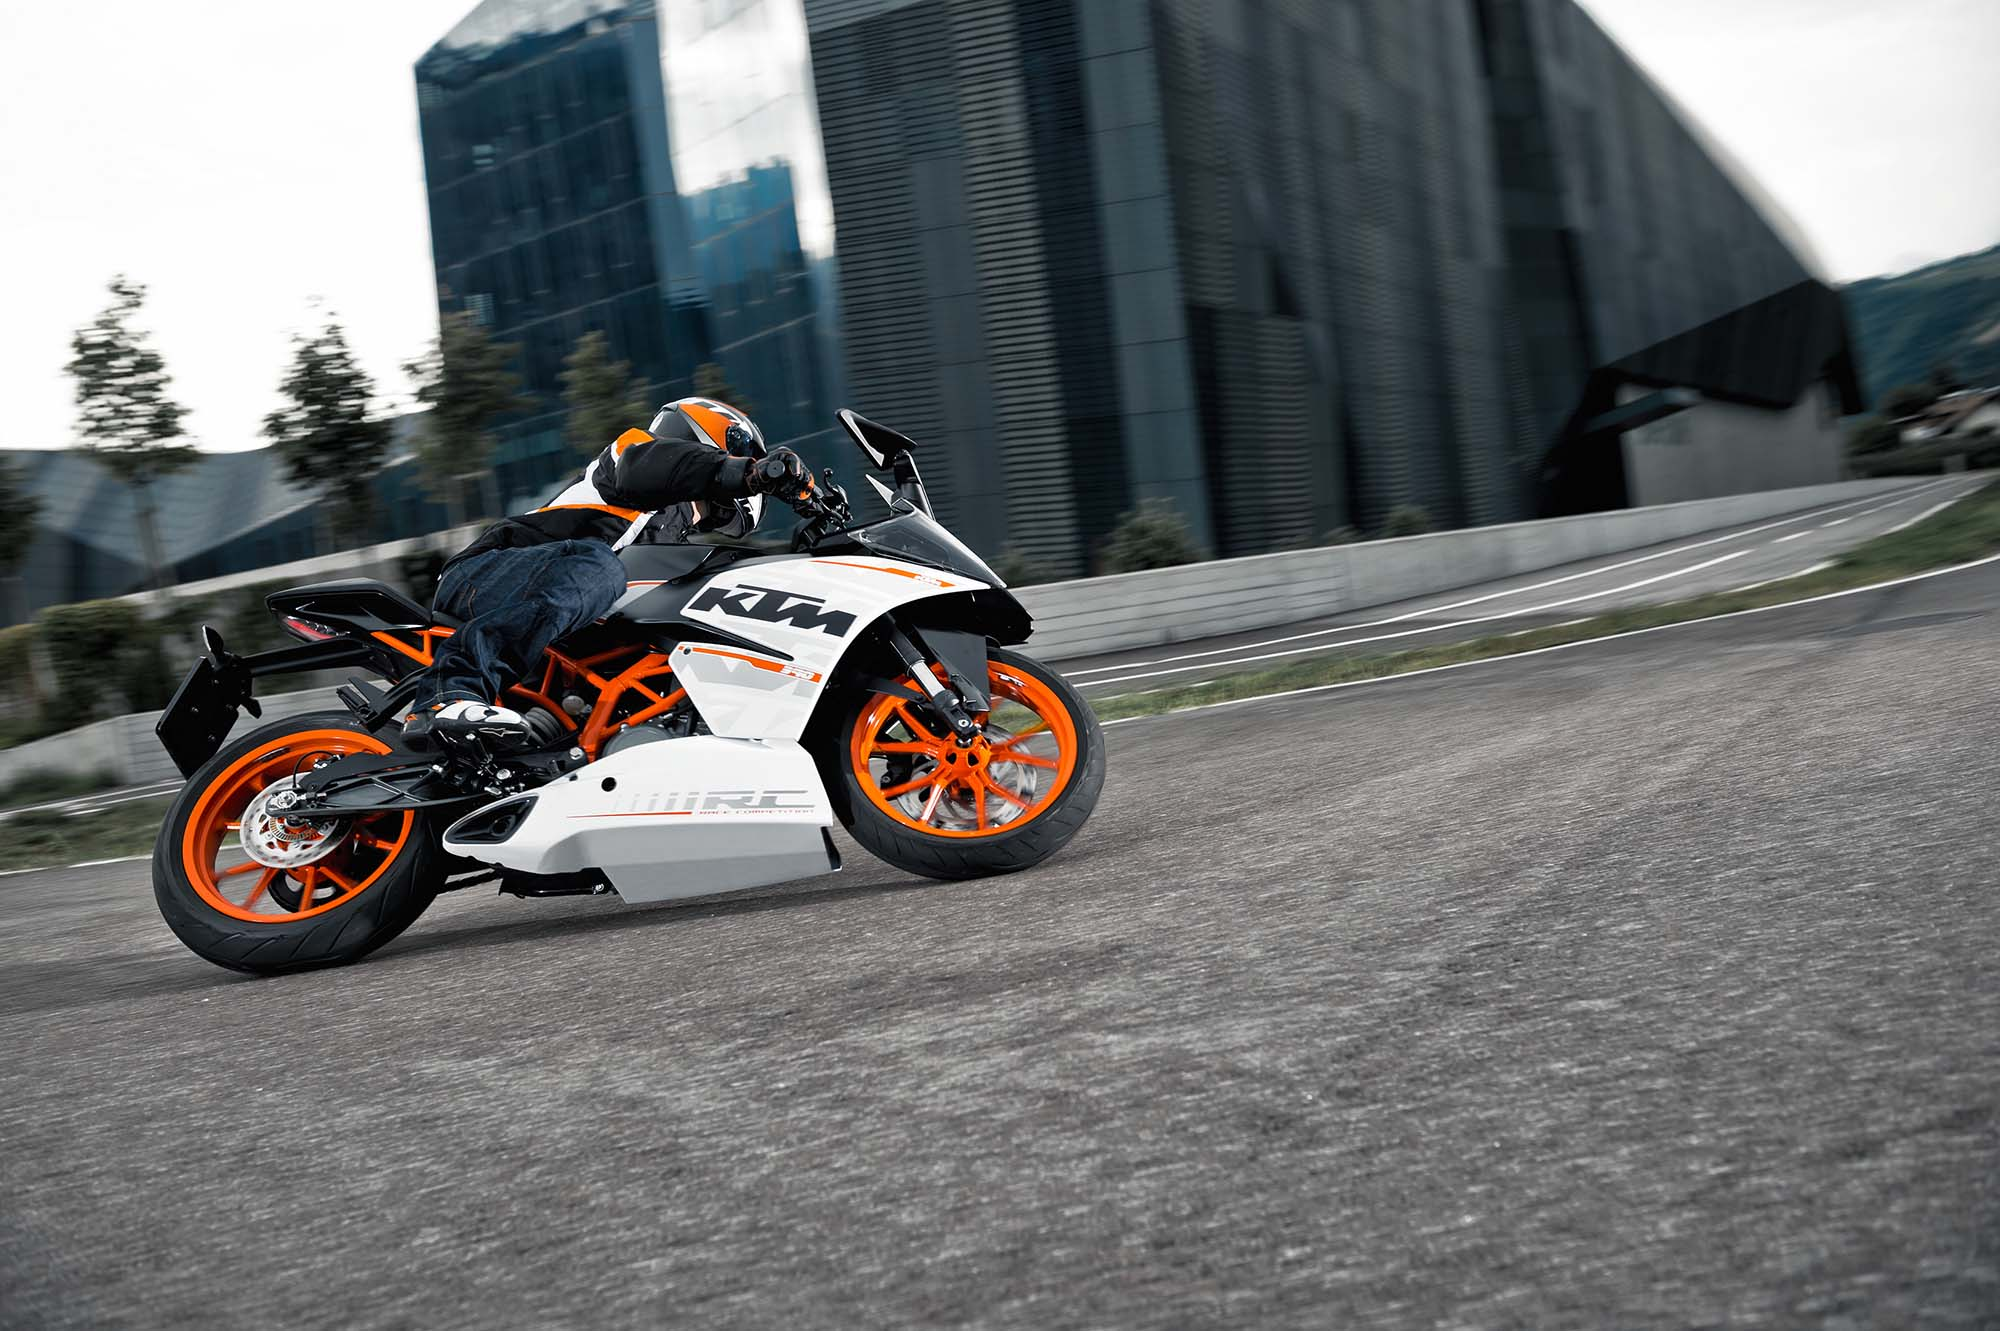 Ktm Rc390 Coming To America 5 499 Asphalt Amp Rubber